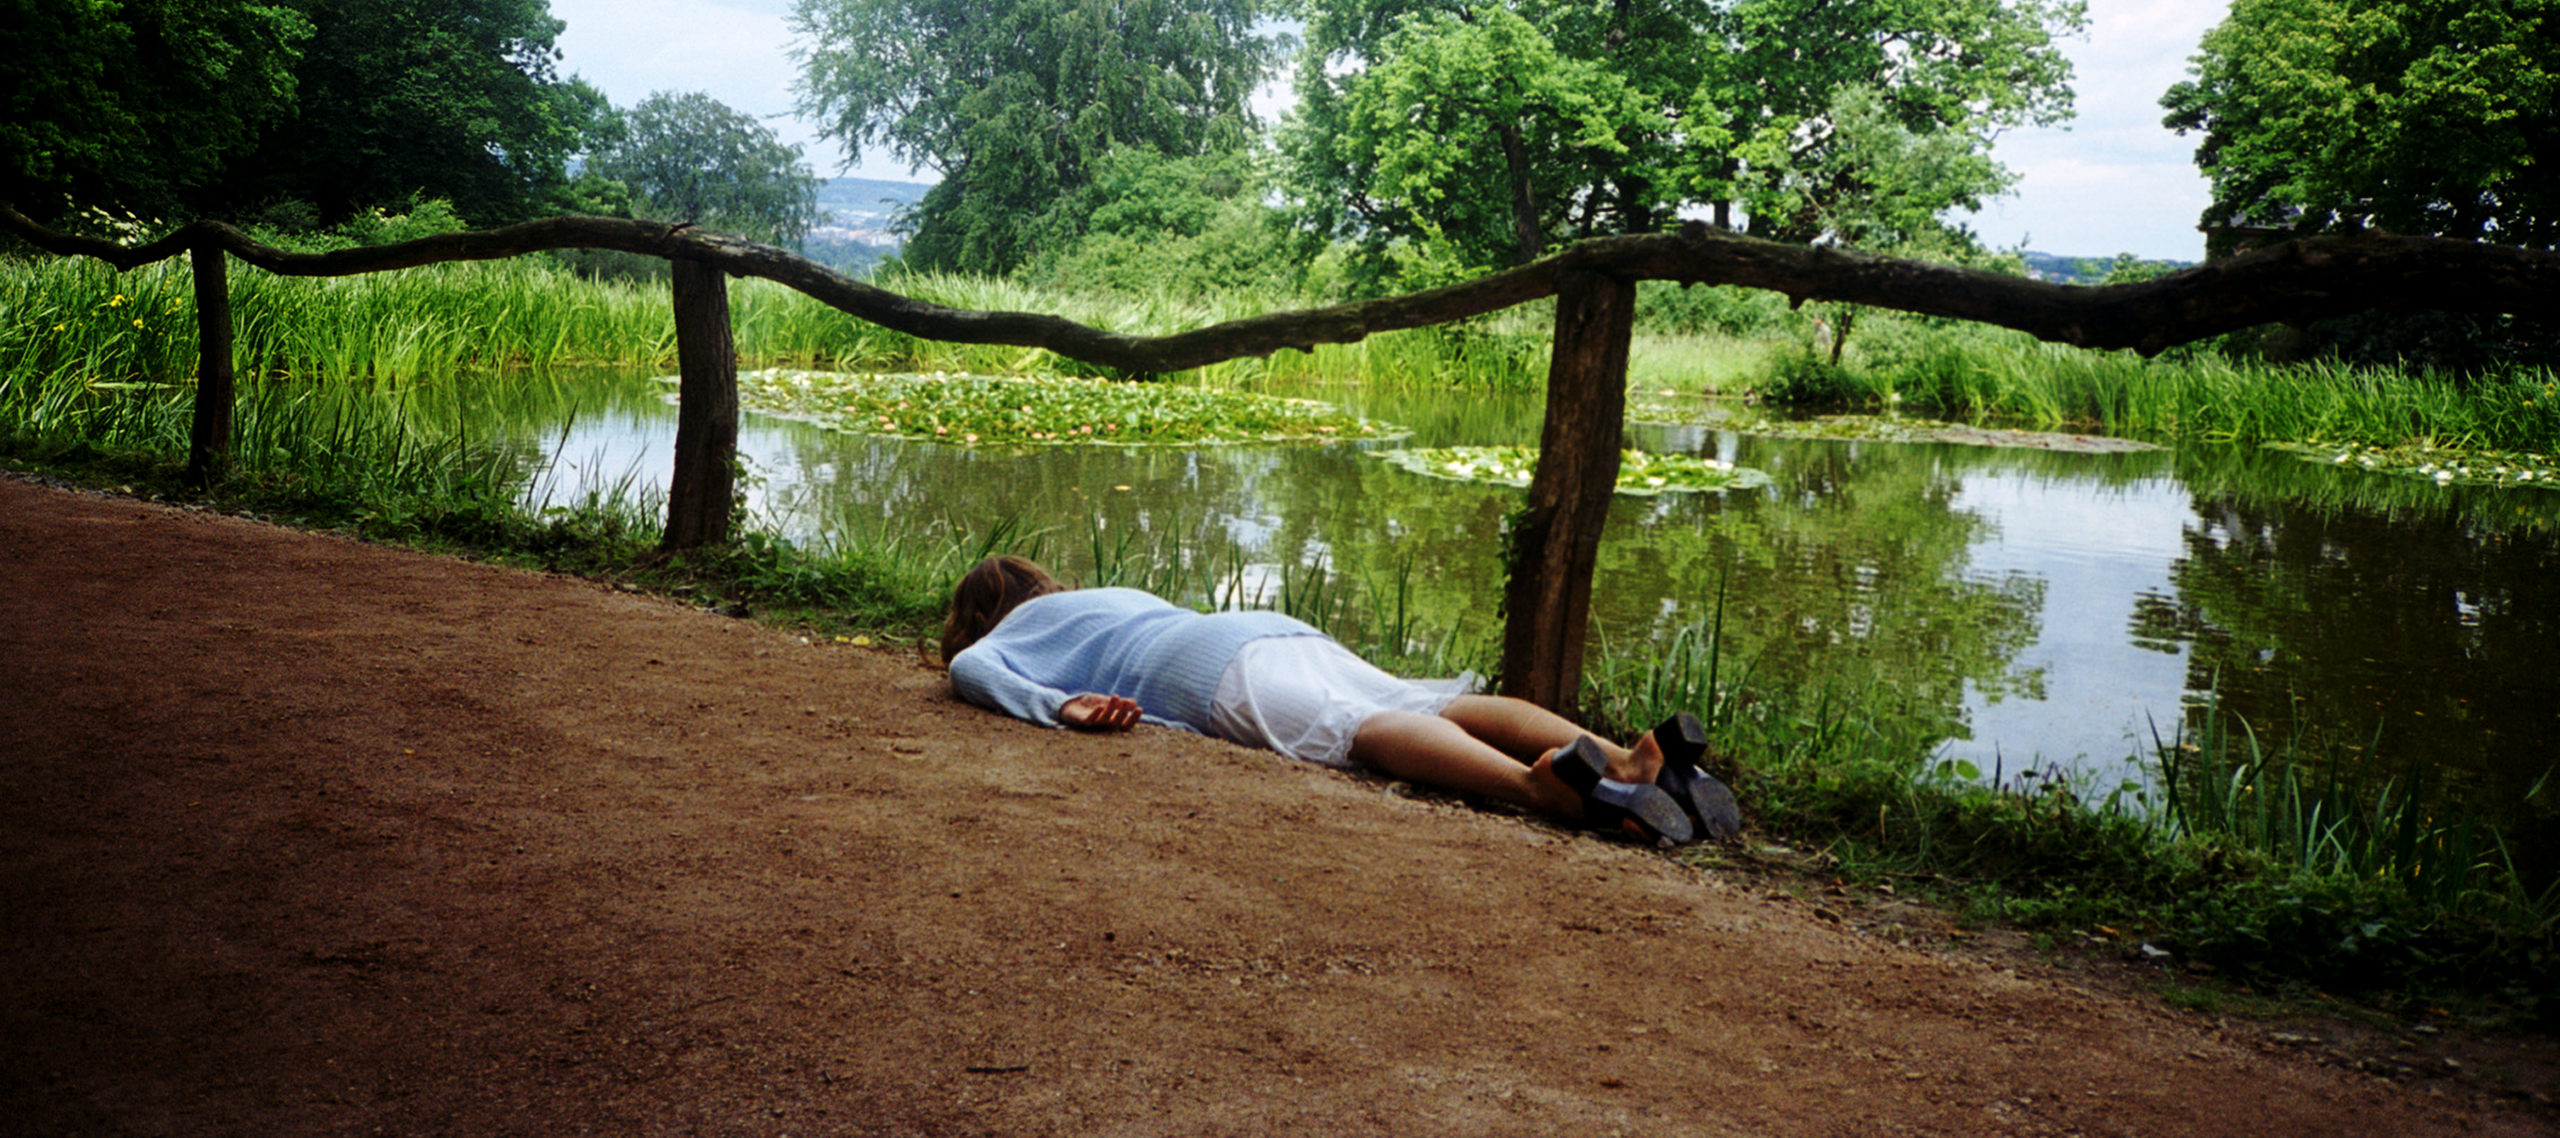 Janaina Tschäpe, Weimar, from <i>100 Little Deaths</i>, 1998; Chromogenic color print, 31 x 47 in.; NMWA, Gift of Heather and Tony Podesta Collection; © Janaina Tschäpe; Image courtesy of Janaina Tschäpe studio